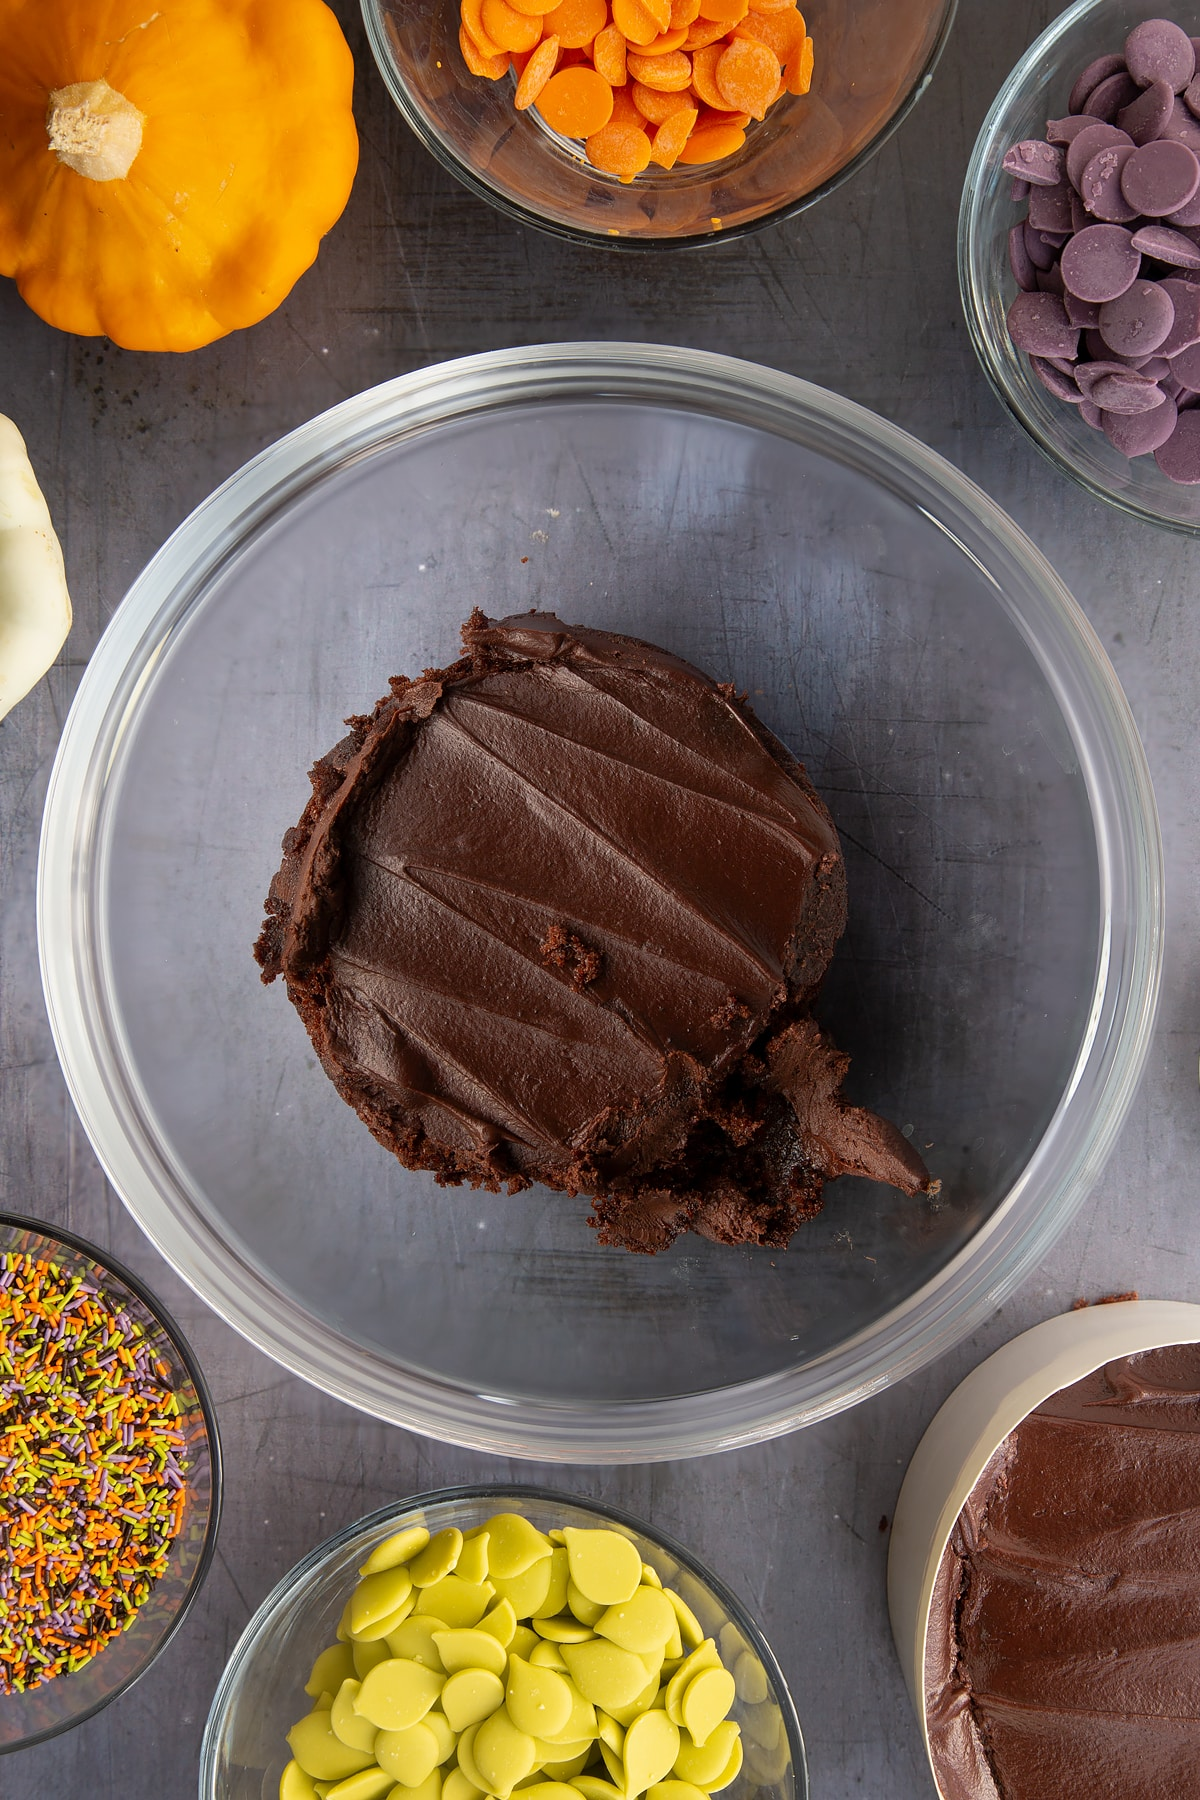 Chocolate fudge cake in a bowl. Ingredients to make Halloween cake pops surround the bowl.